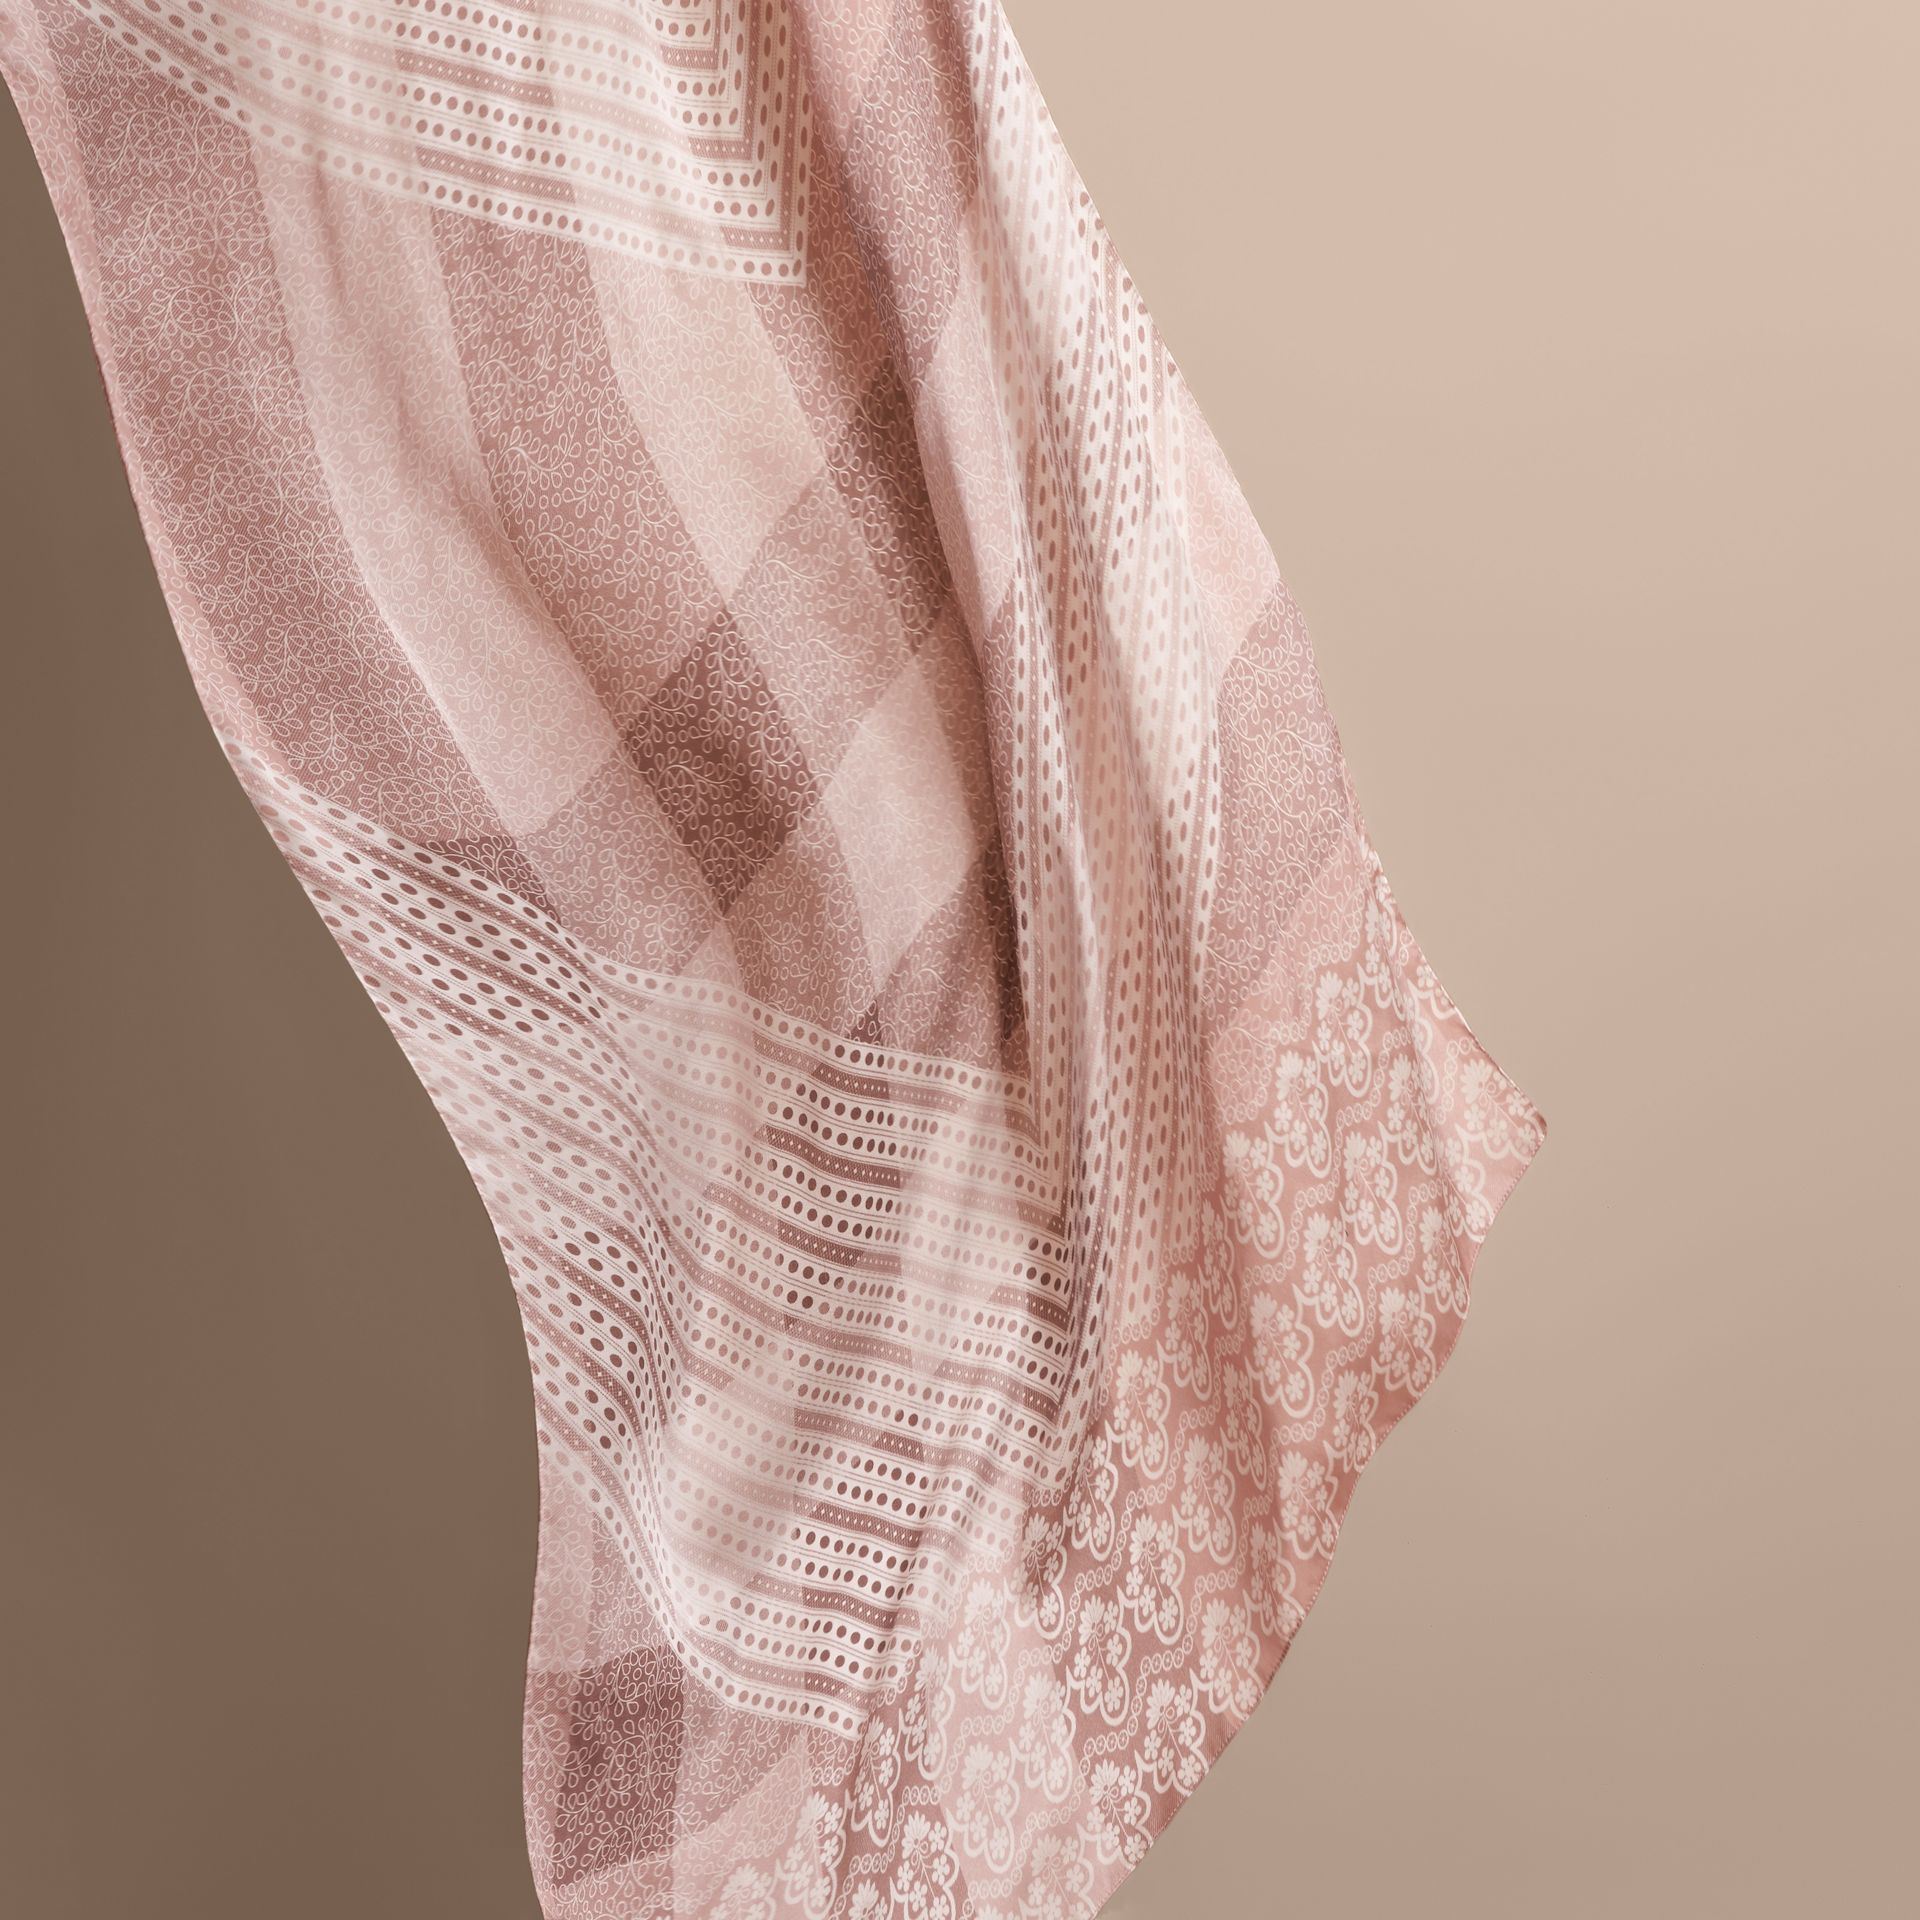 Floral Lace and Check Print Silk Scarf in Ash Rose - Women | Burberry Singapore - gallery image 4